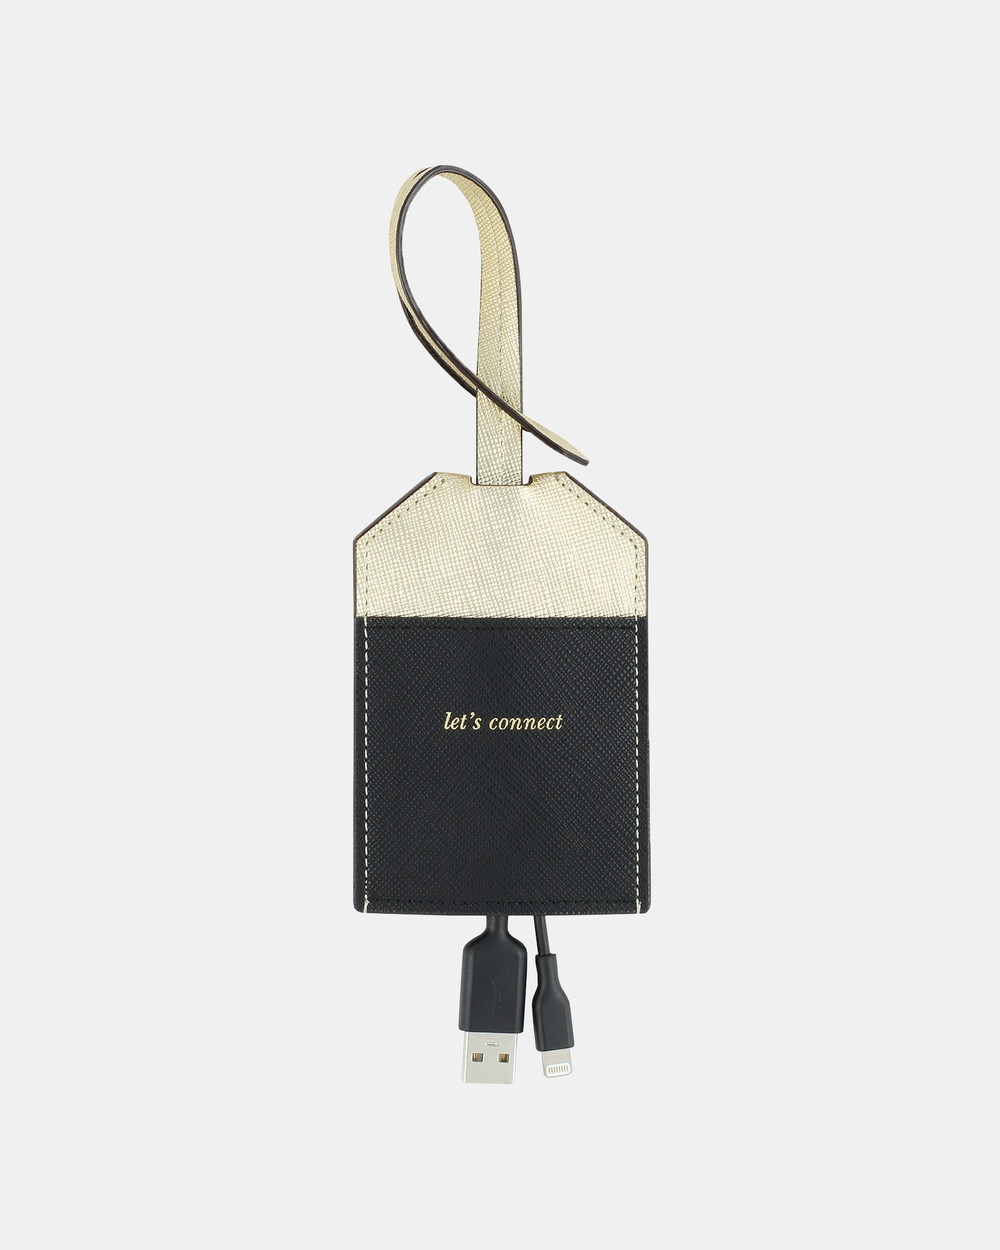 Kate Spade New York Portable Lightning Cable Tech Accessories Gold/Black Australia